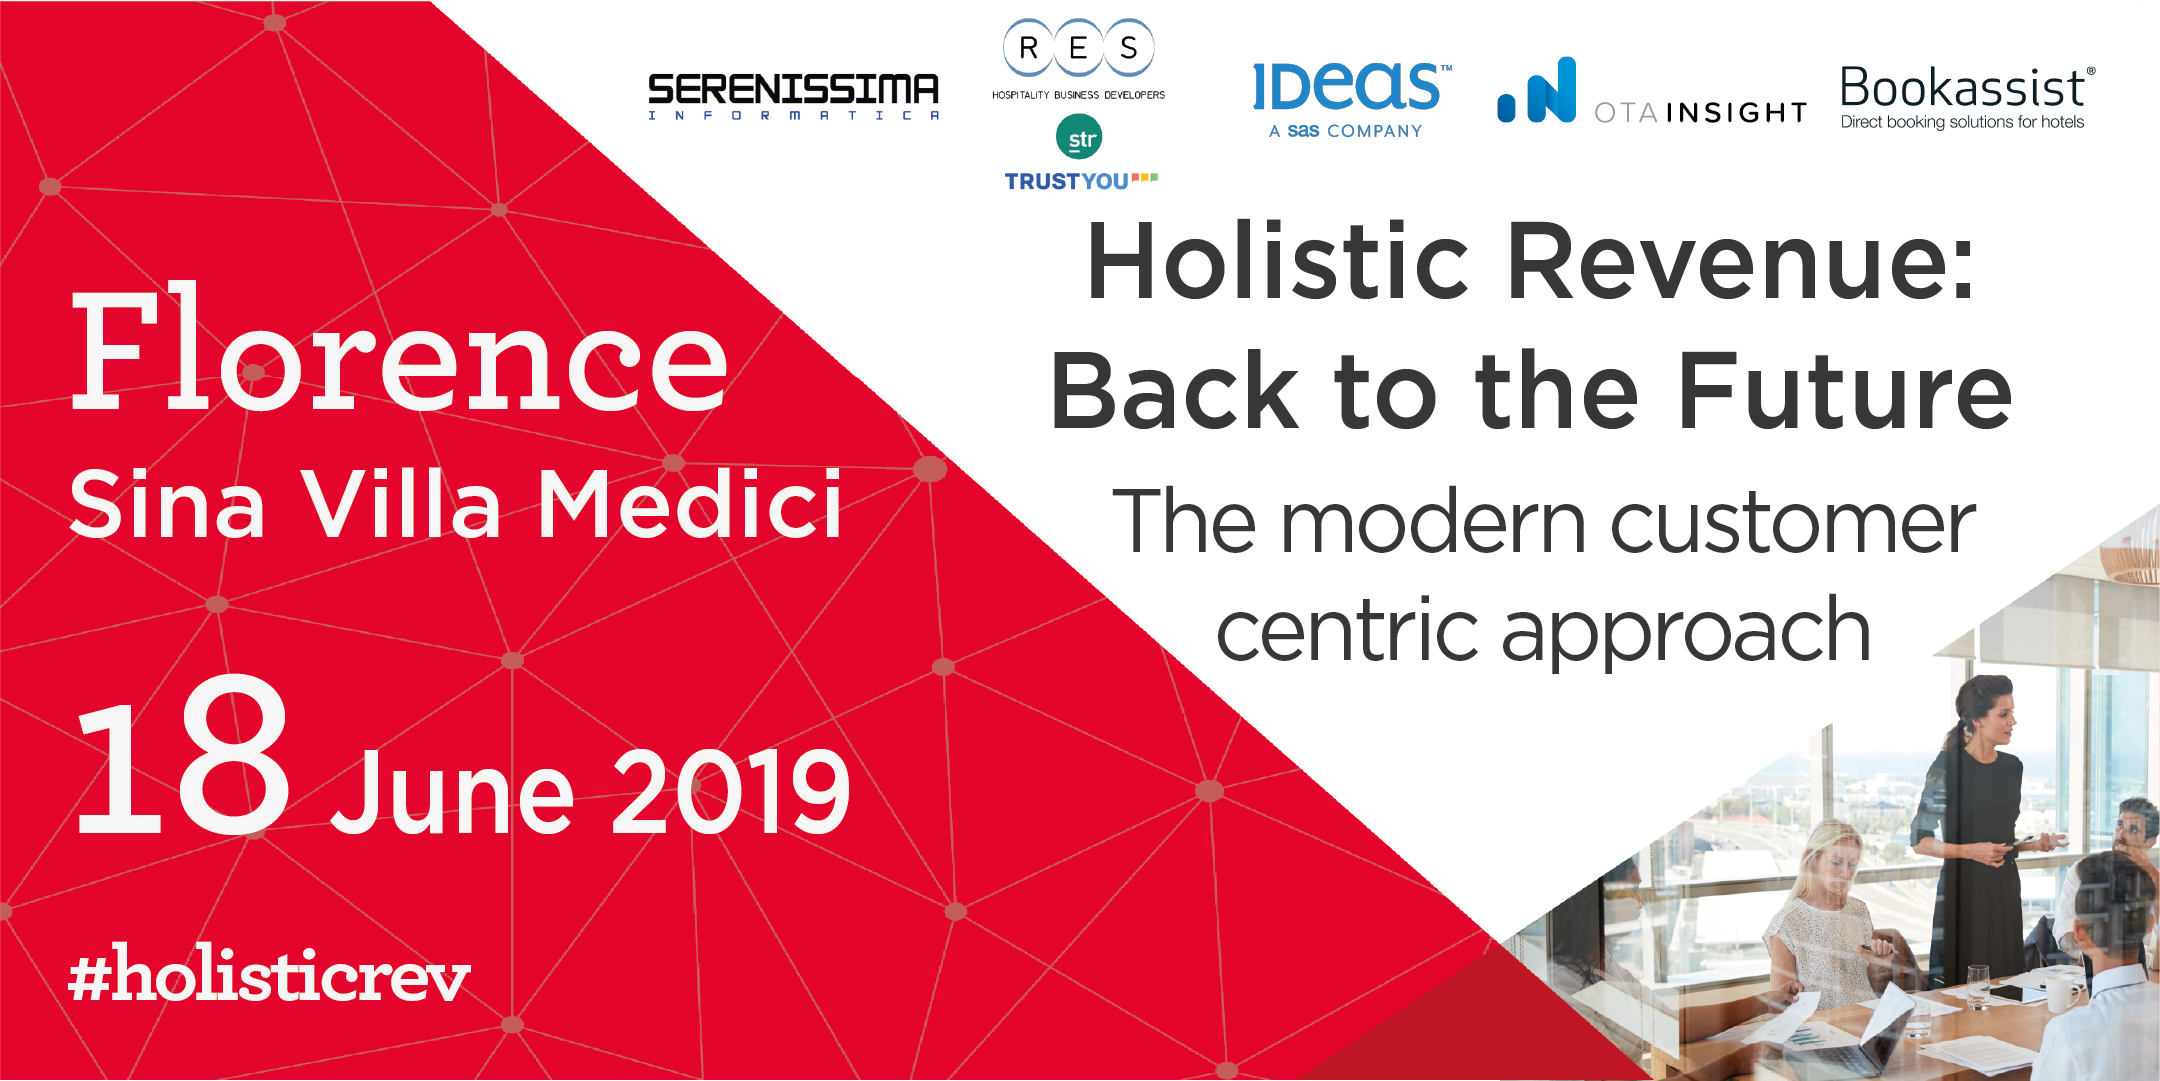 Roadshow 2019 > Holistic Revenue: Back to the Future! (FI)